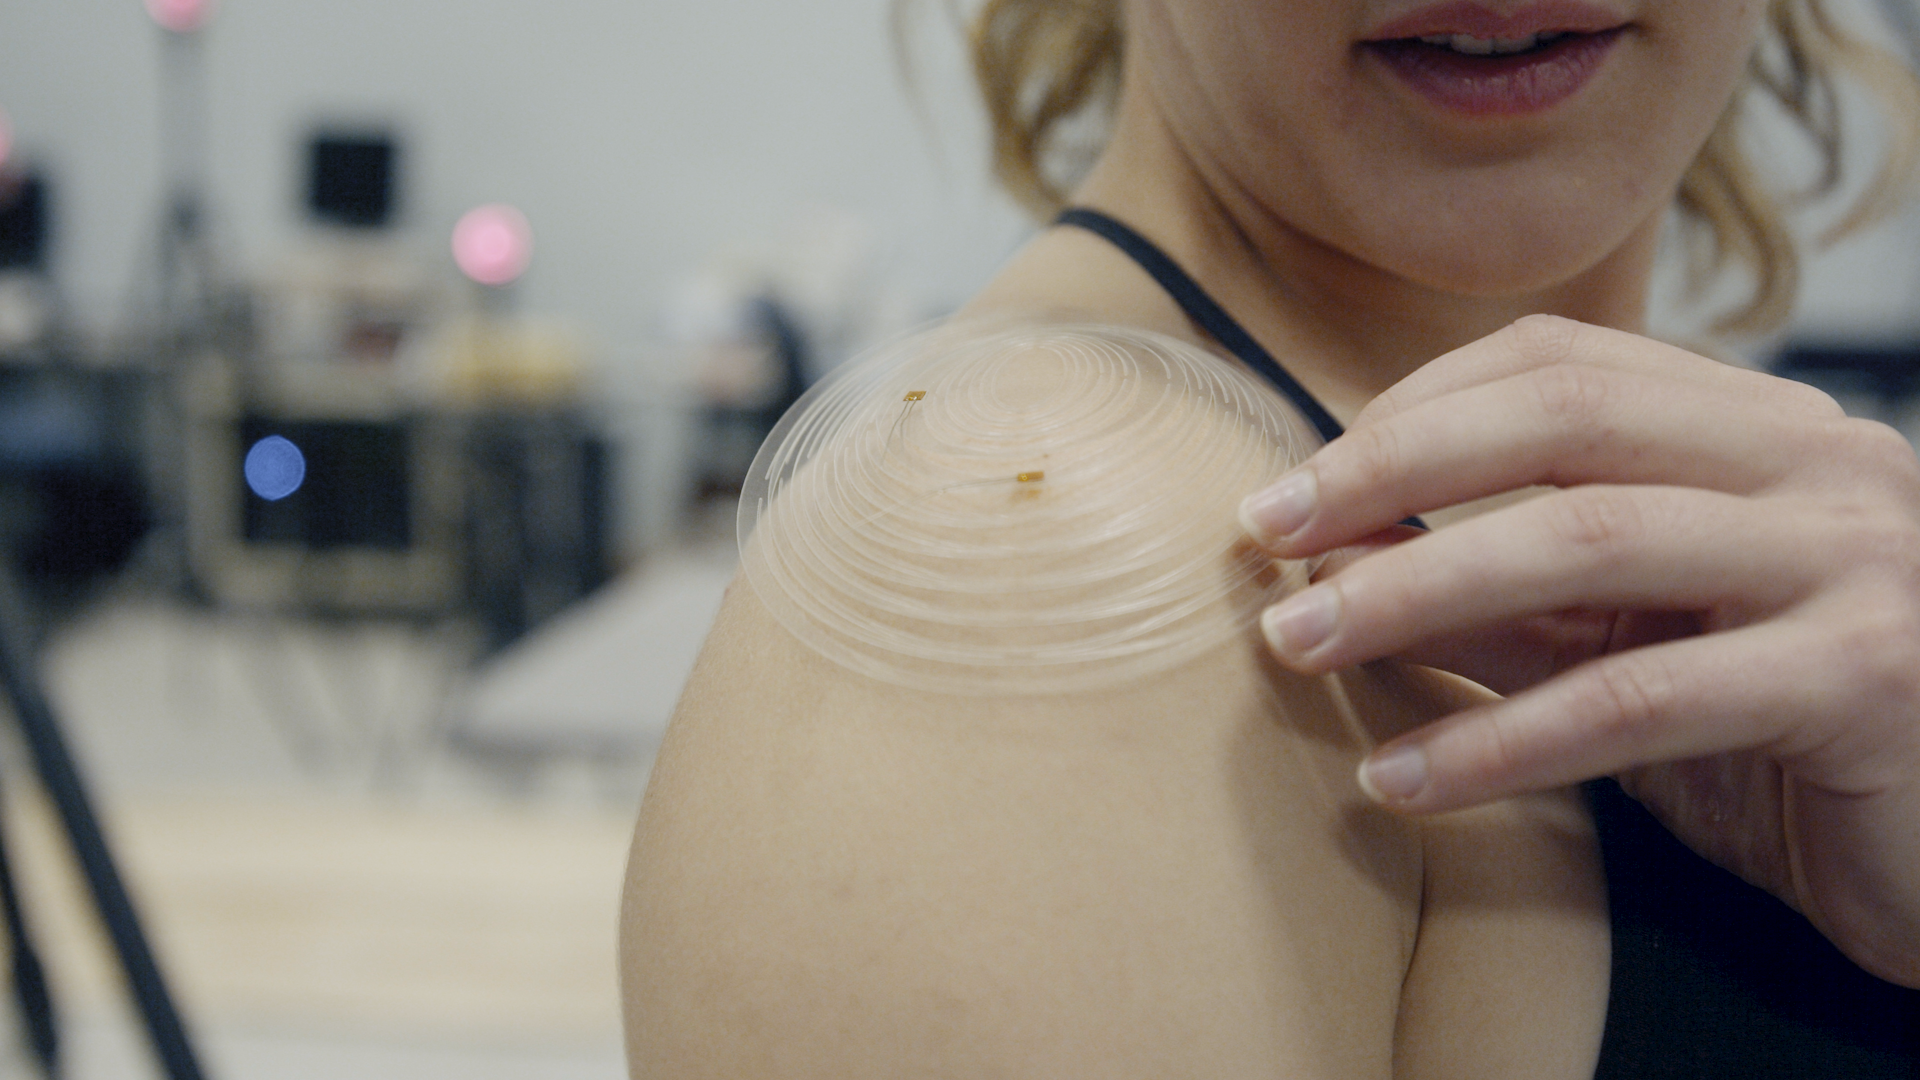 Erin Evke demonstrates how the cut patterns in the kirigami sensor open so that it follows the curve of her shoulder. This enables the sensor to be manufactured flat, which is crucial to making the device affordable. Credit: Levi Hutmacher, Michigan Engineering